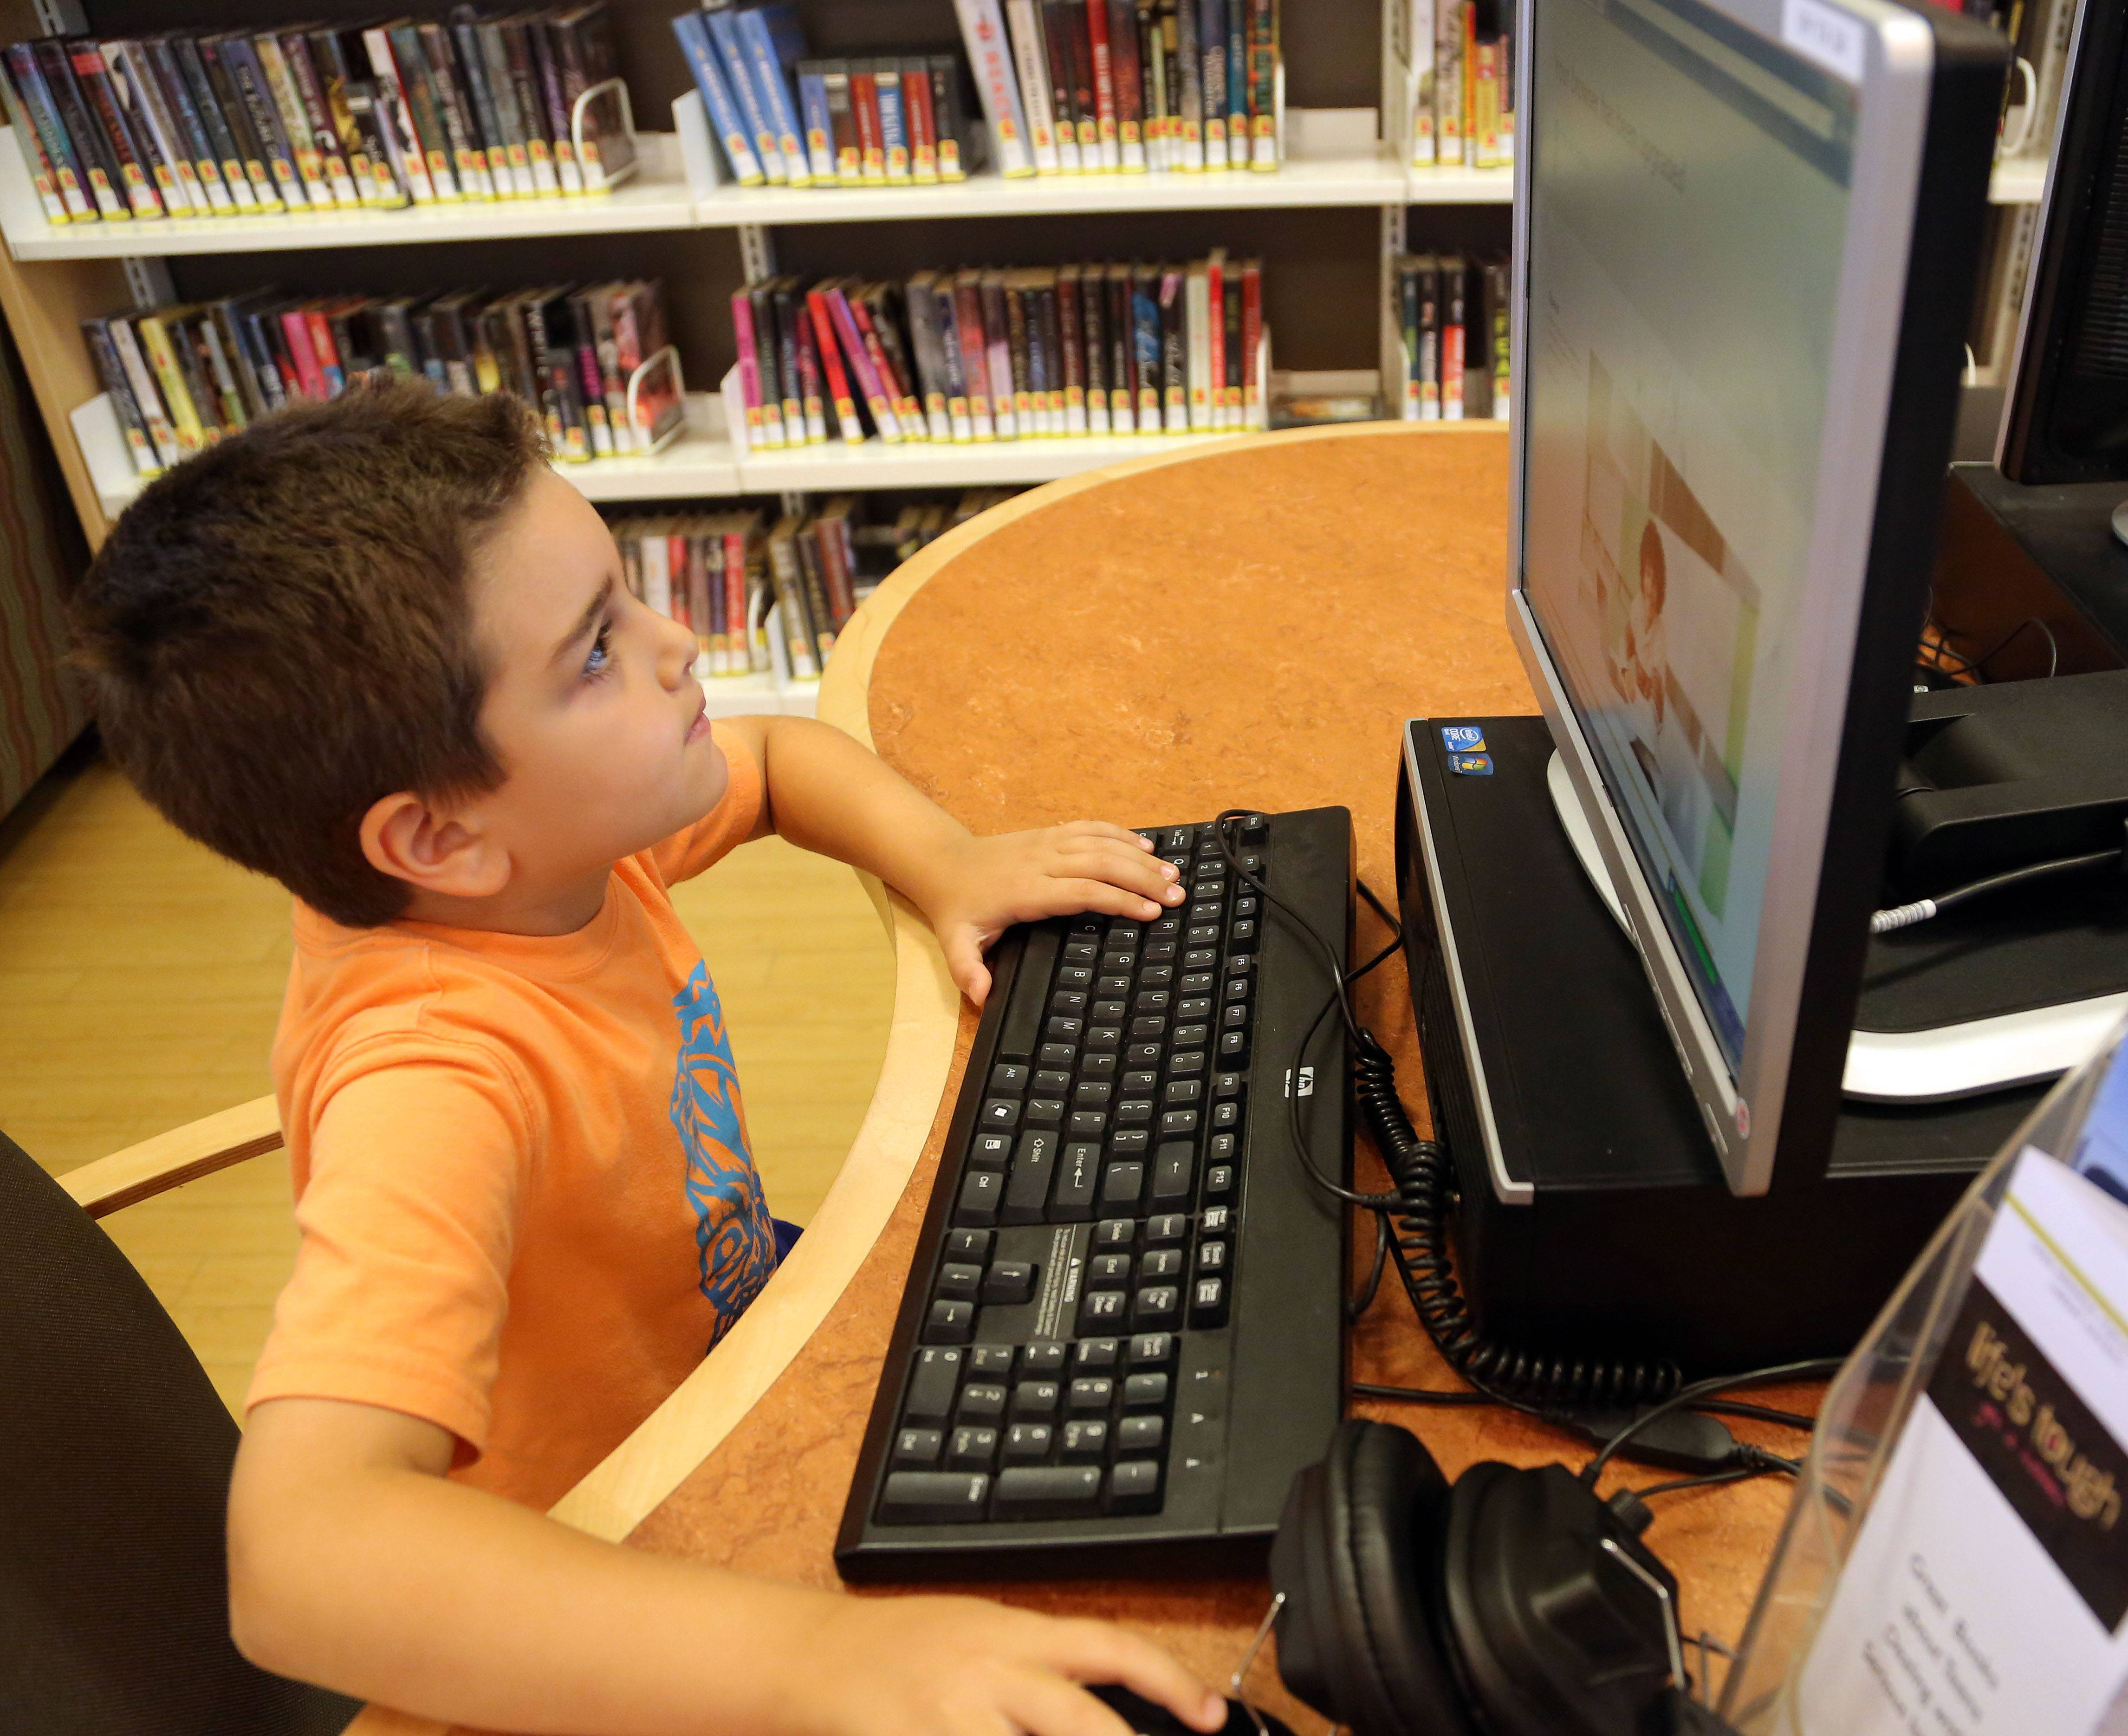 Seven-year-old Filip Janesky of Vernon Hills uses a computer at the Aspen Drive Library in Vernon Hills.